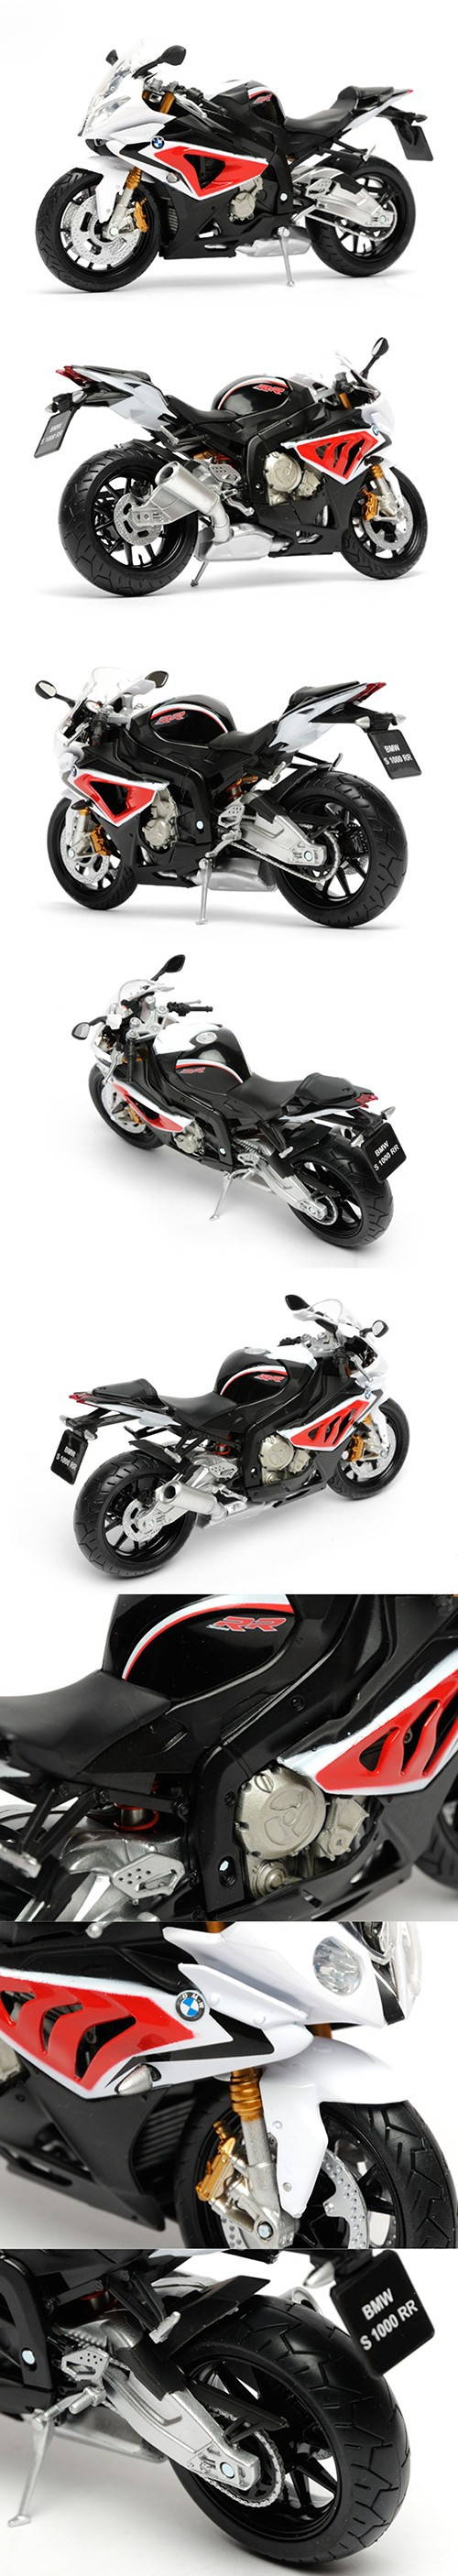 S1000RR Black&Red motorcycle model 1:12 scale models Metal Diecast Models Motor Bike Miniature Race Toy For Gift Collection